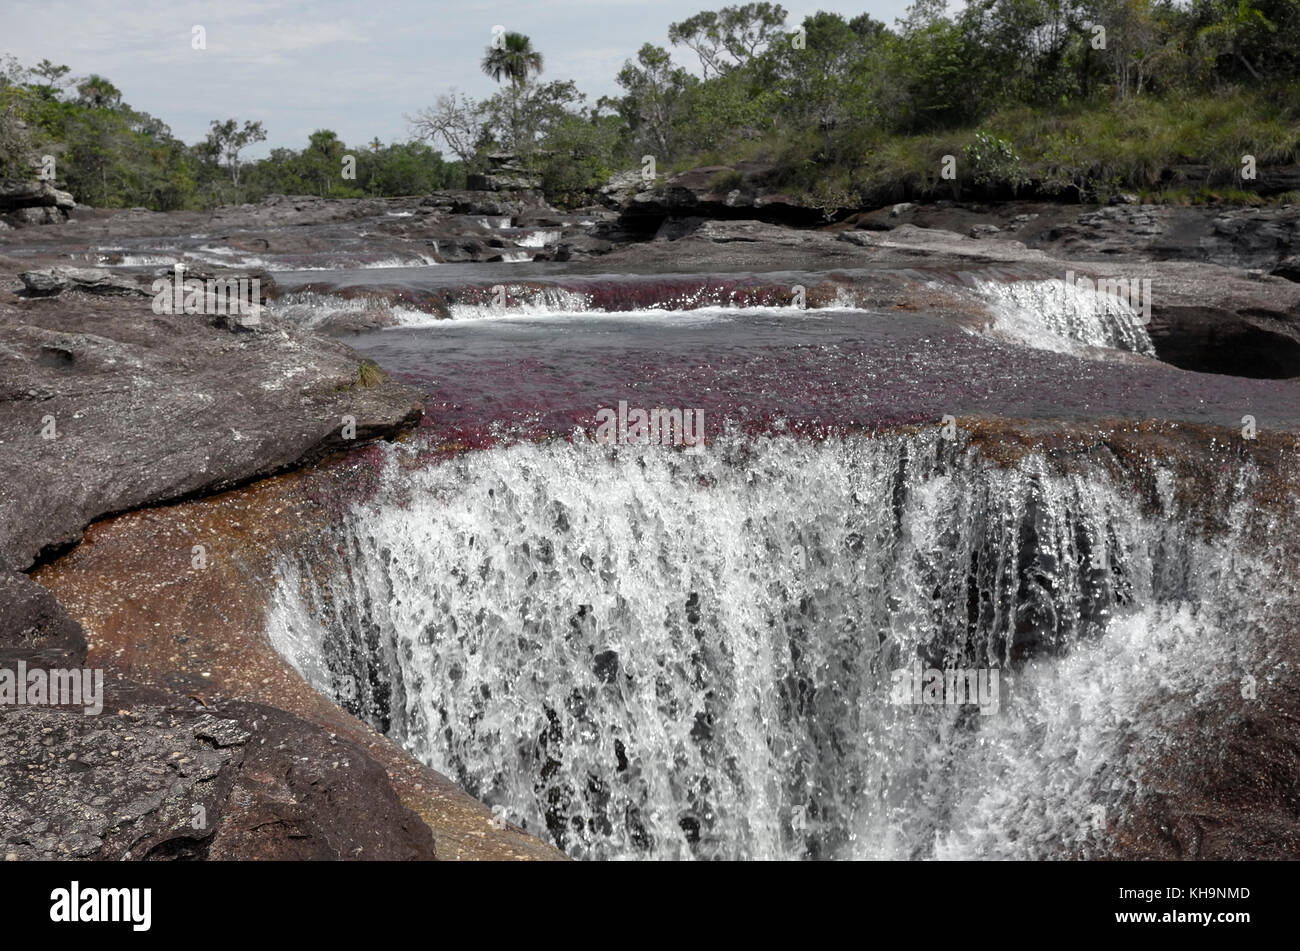 Rock-cut holes in Cano Cristales - Stock Image